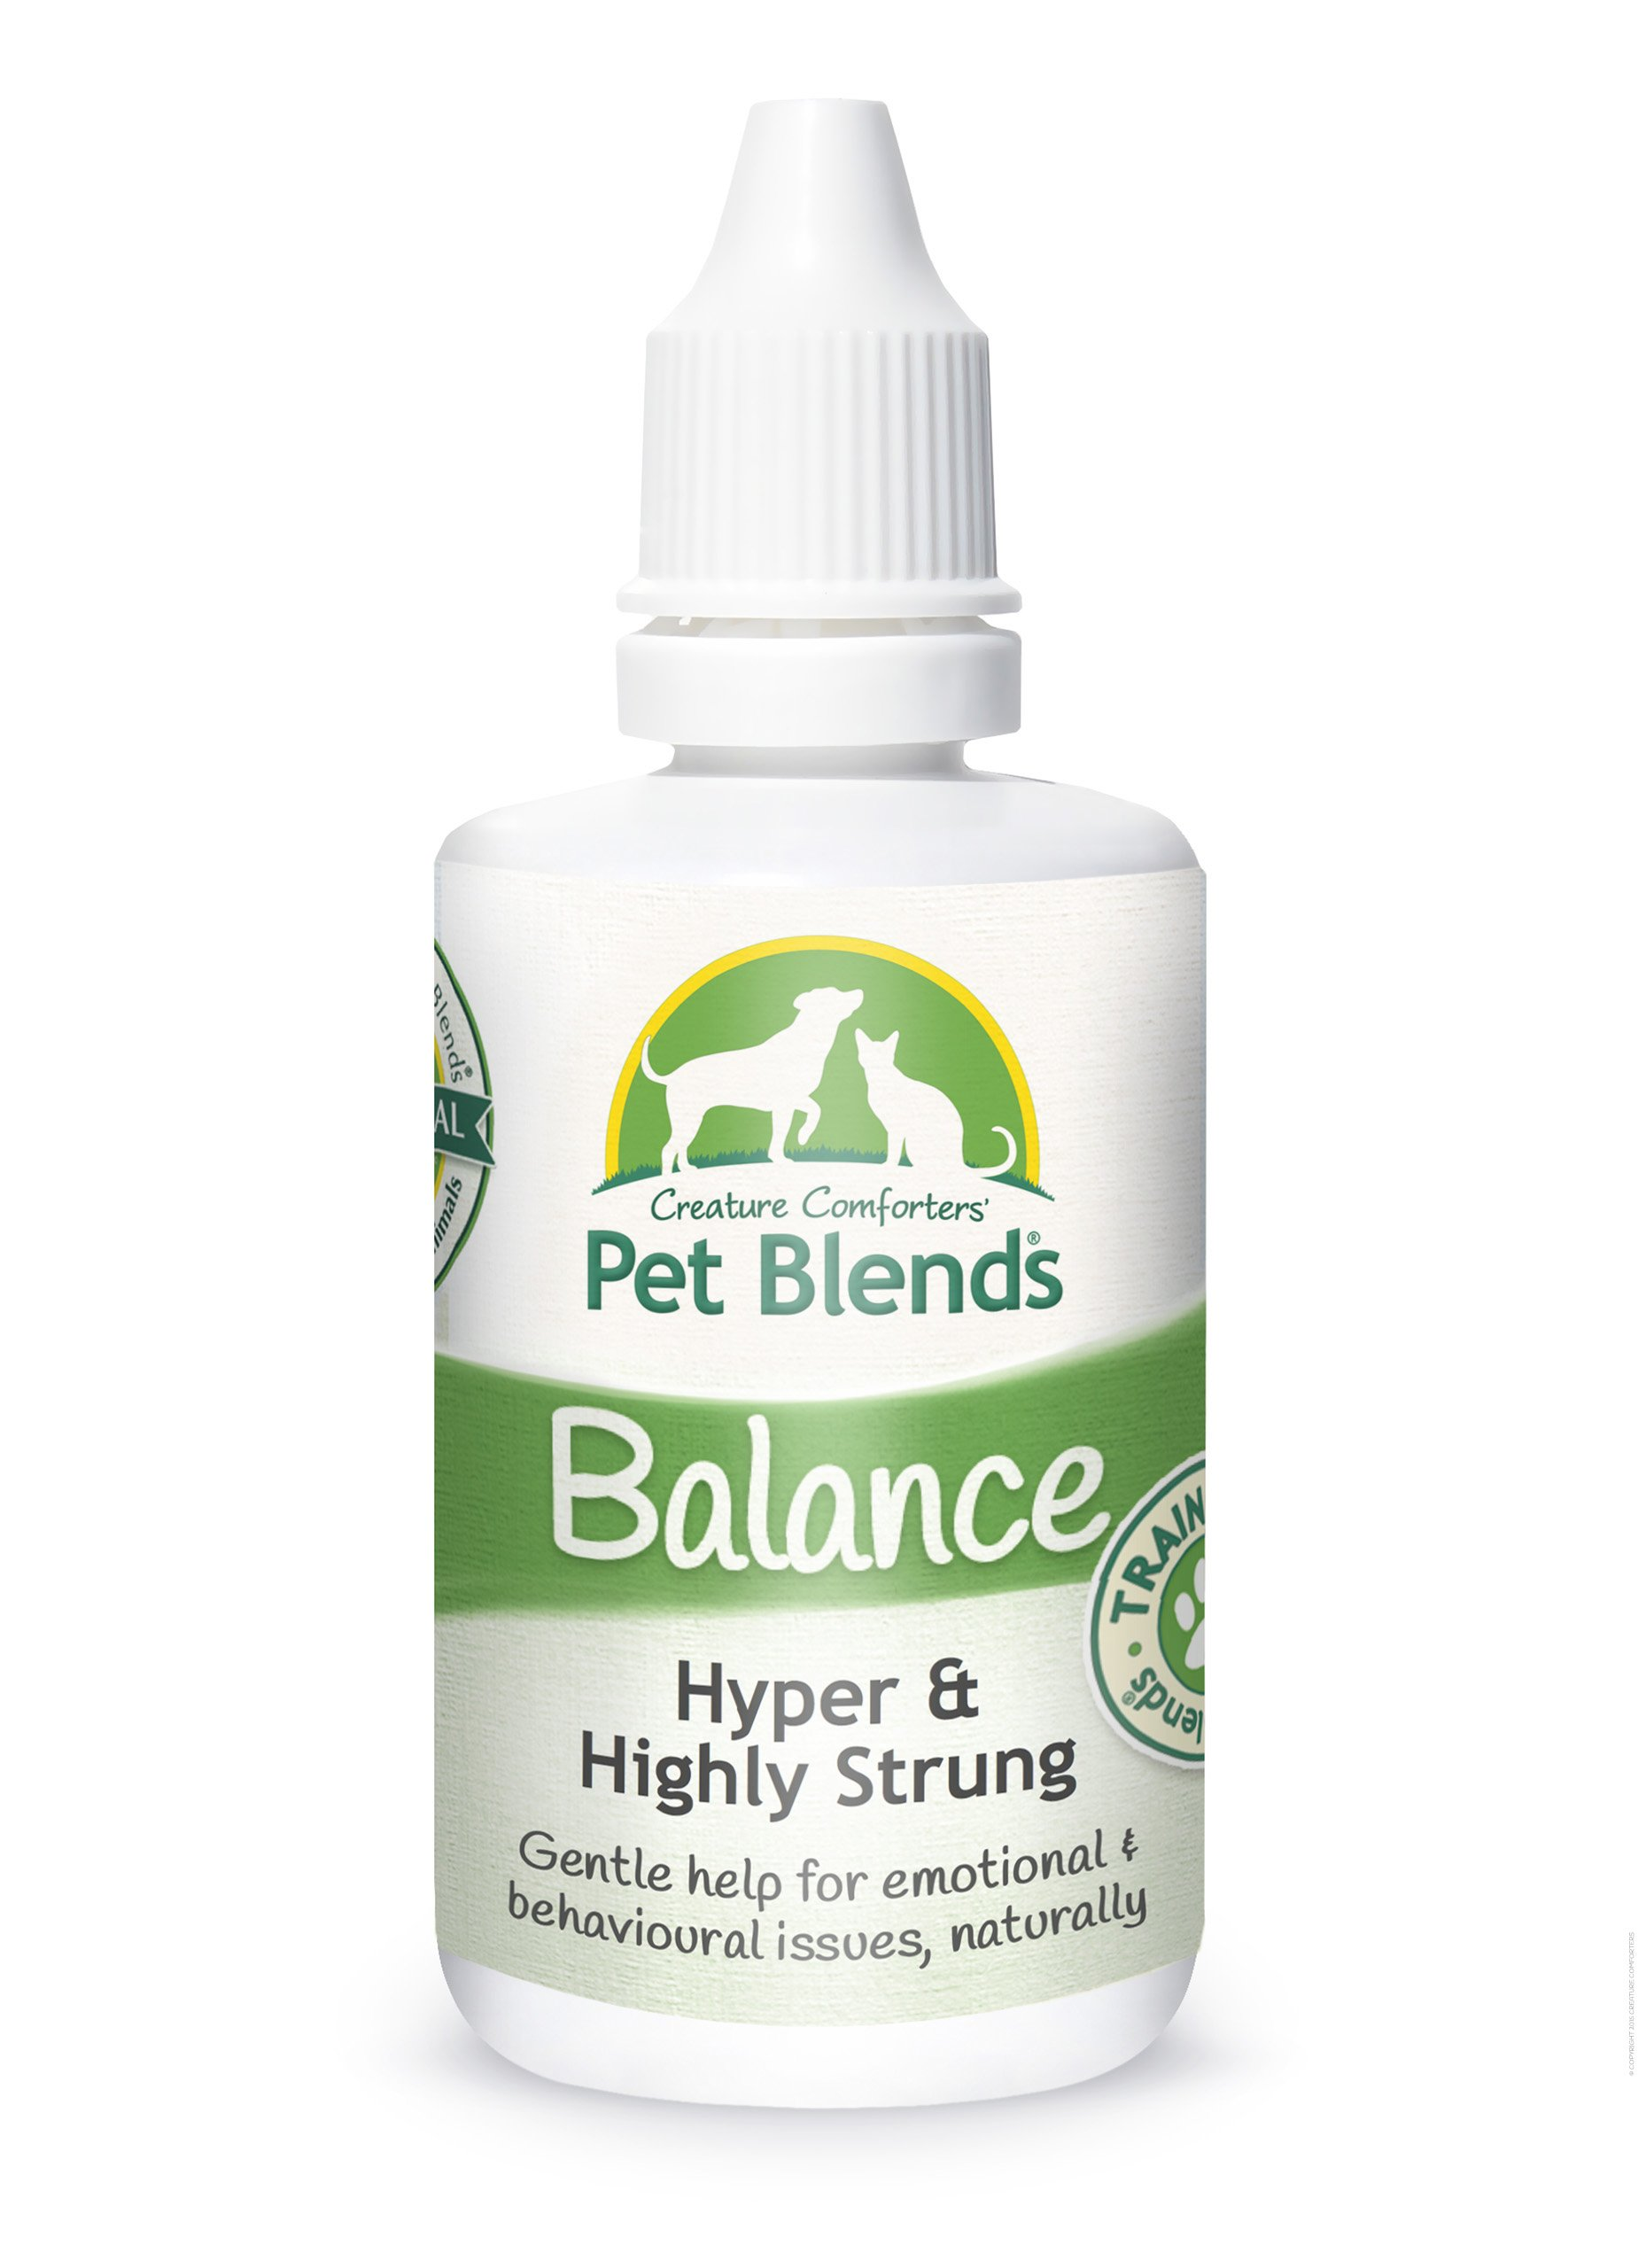 Pet Remedy for Highly Strung, Hyper, Excitable, Unruly and Training Animals. To Help Naturally Calm Dogs, Cats and Horses. The Original Balance Pet Blend Flower Essence 50ml